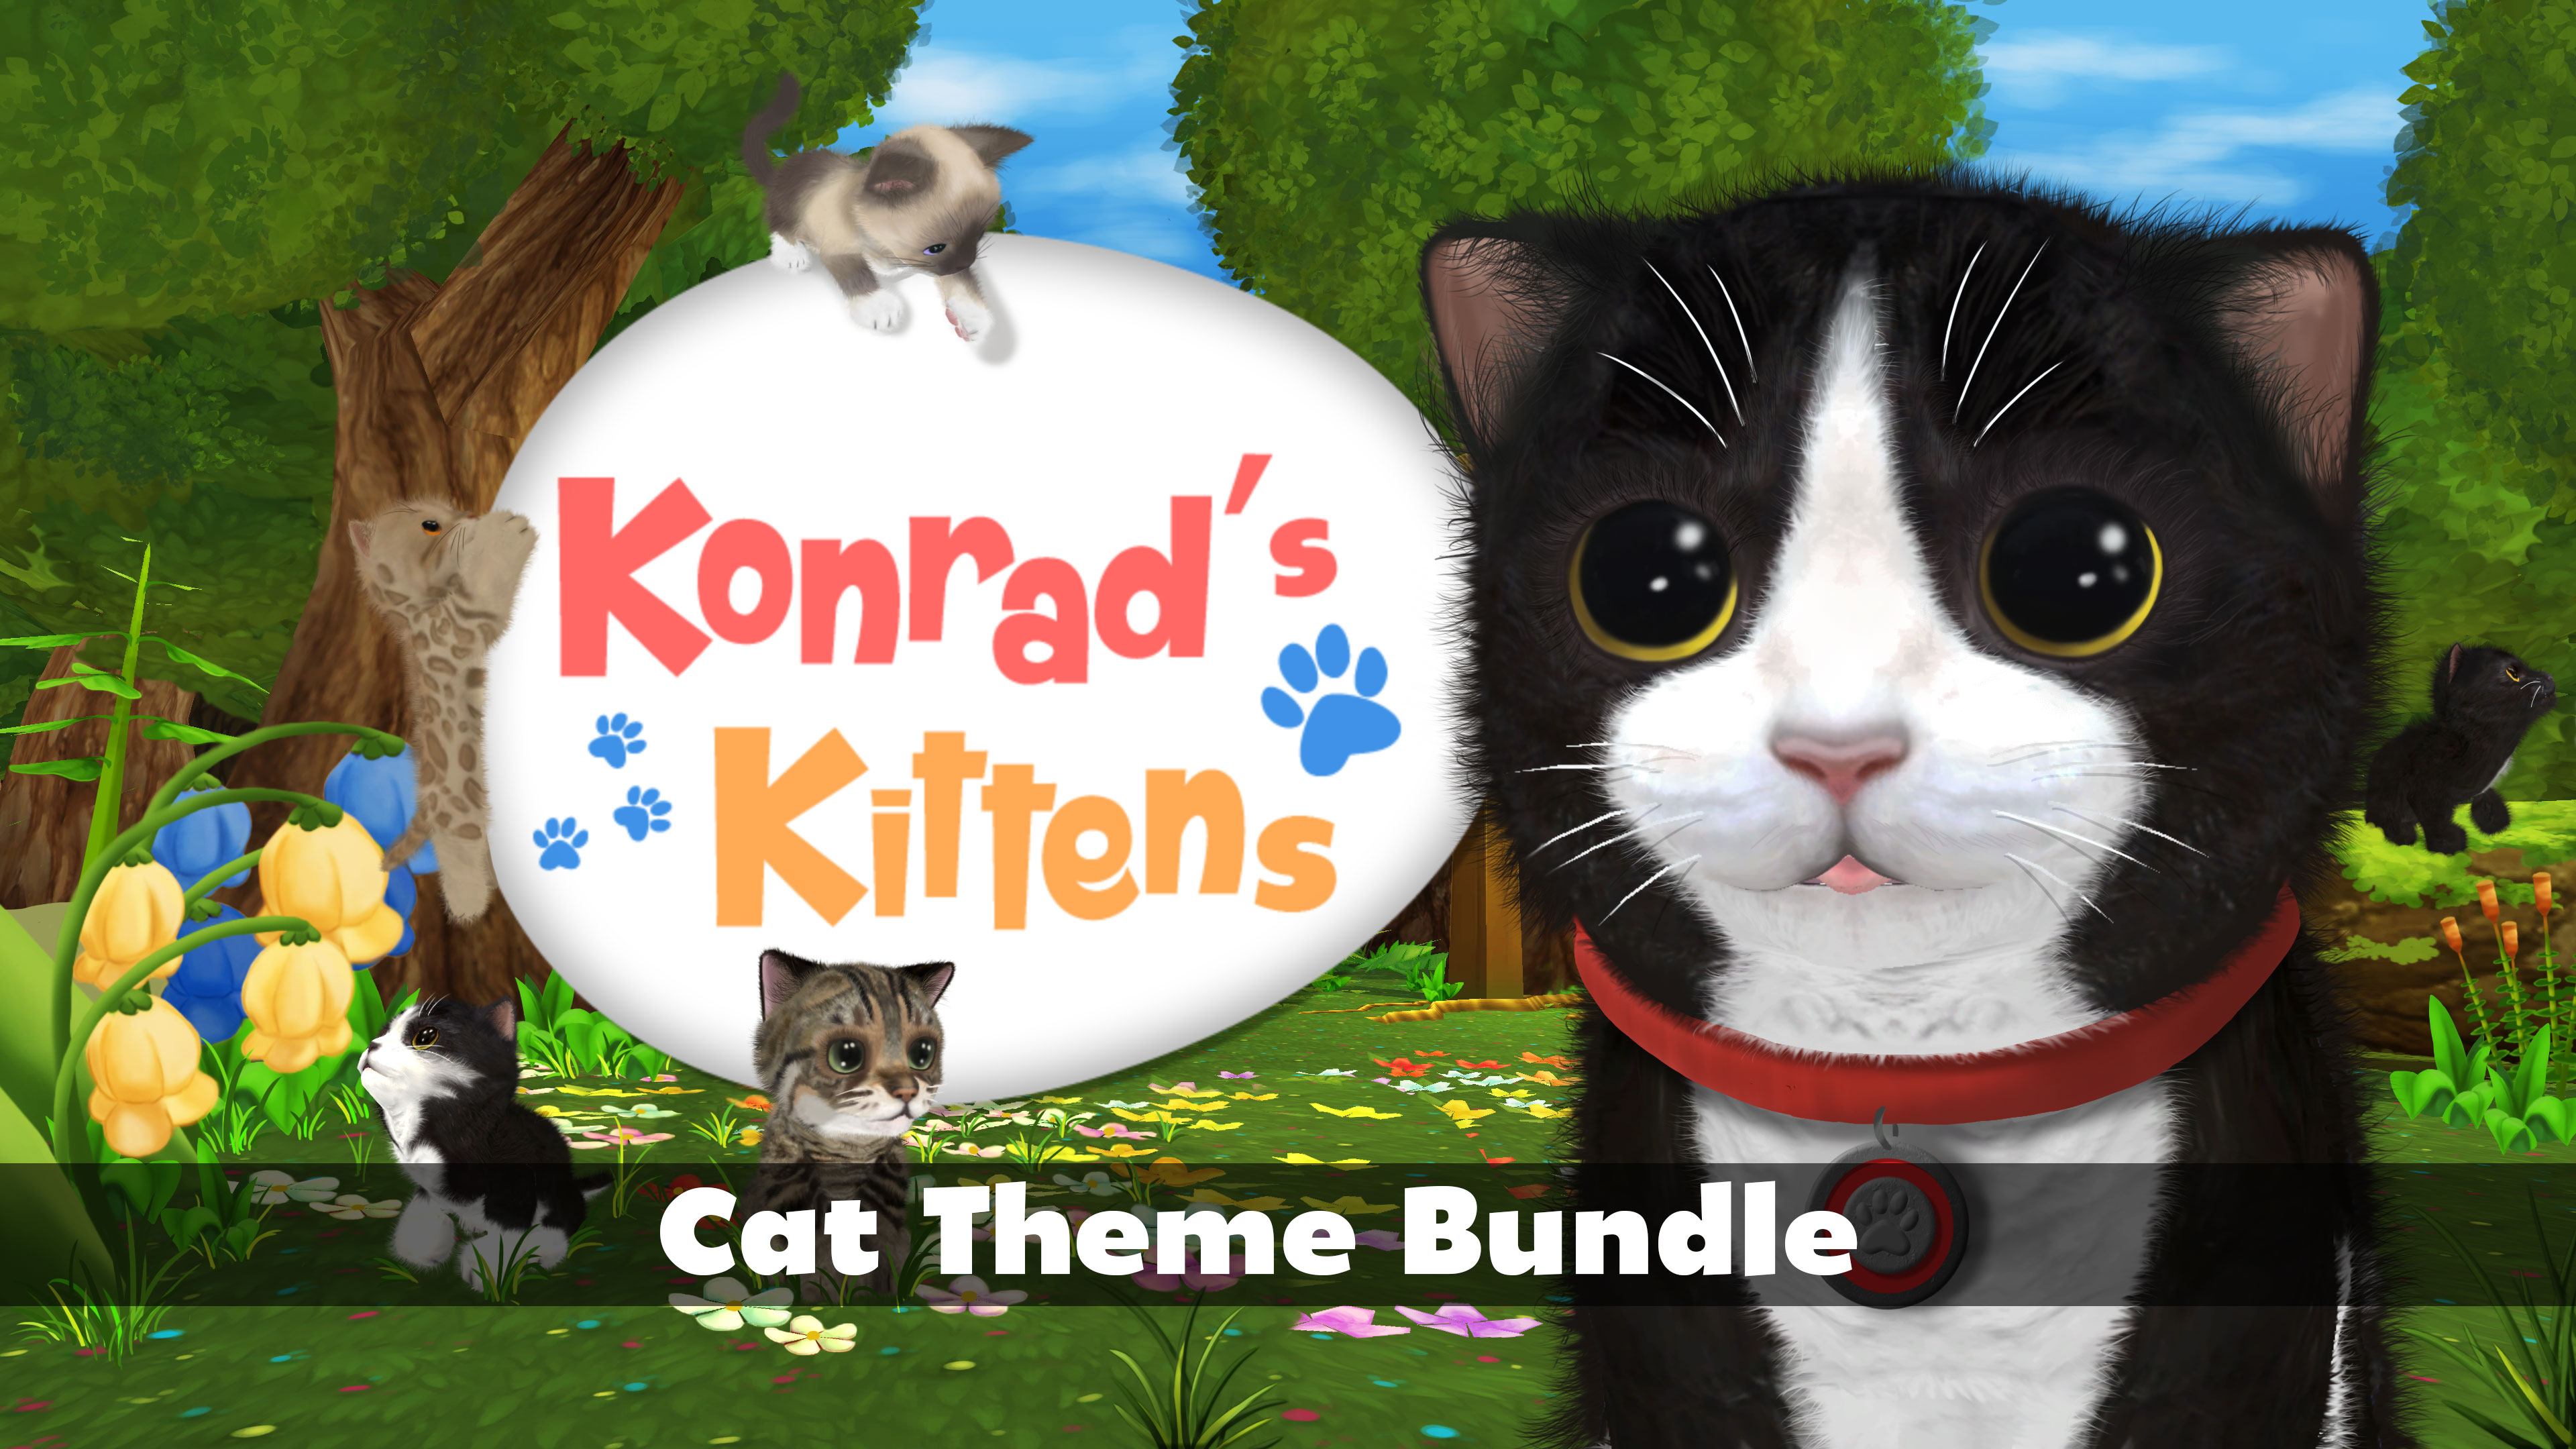 Konrad's Kittens - Cat Theme Bundle